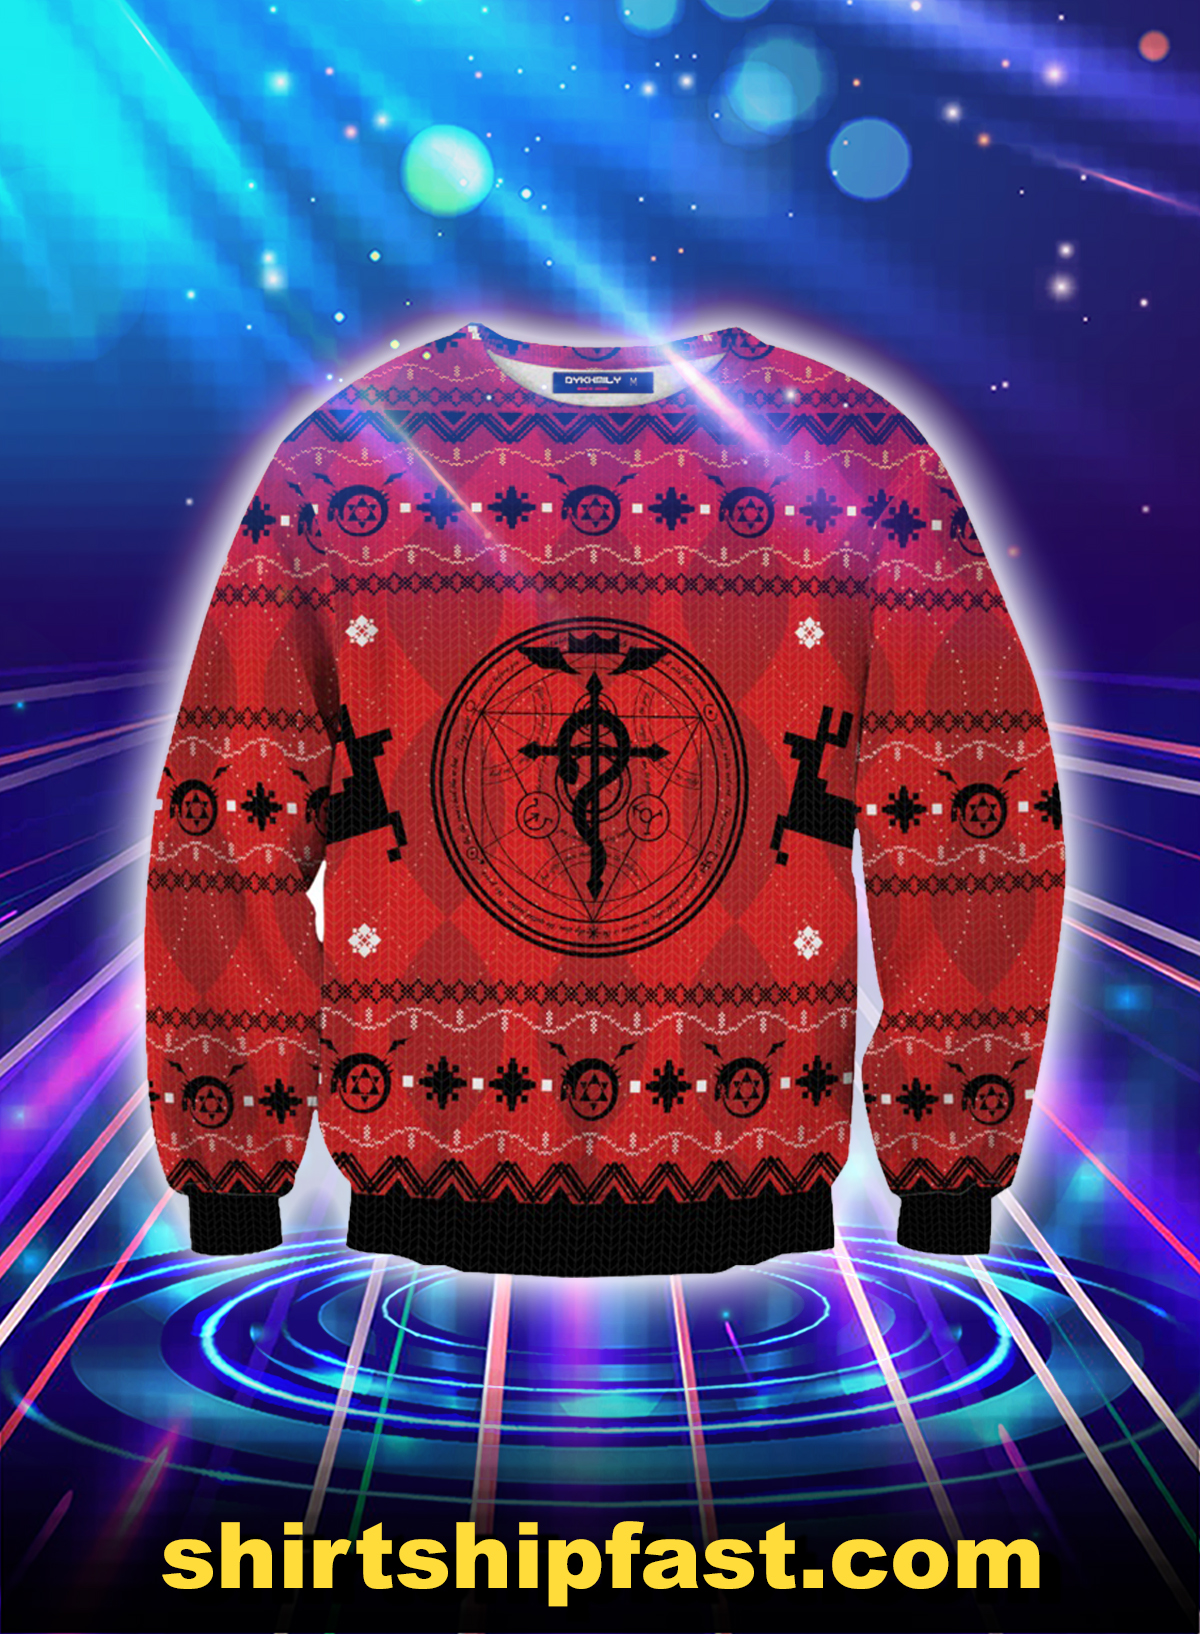 Fullmetal alchemist christmas sweater - Picture 1